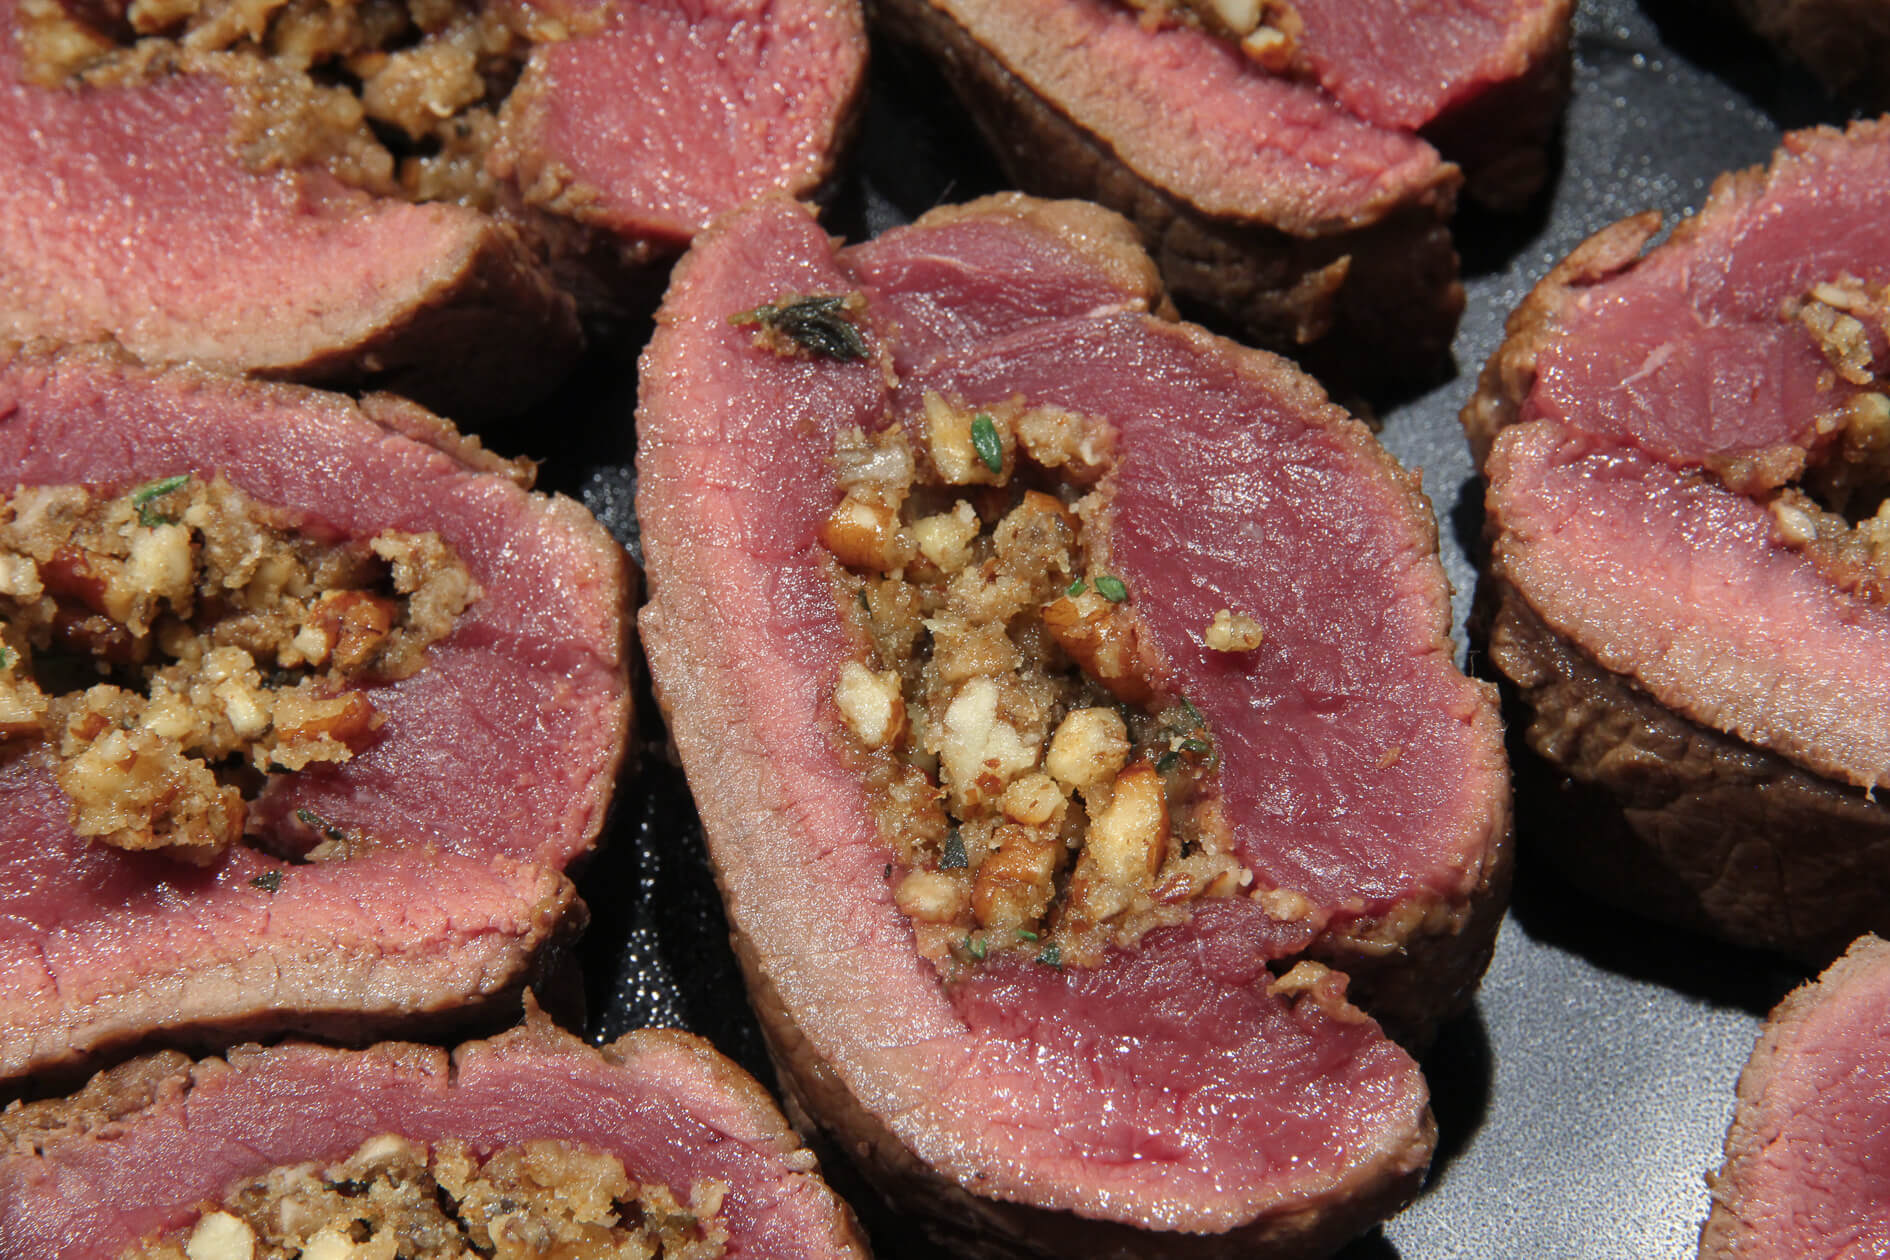 venison stuffed with sage, walnut and mushroom